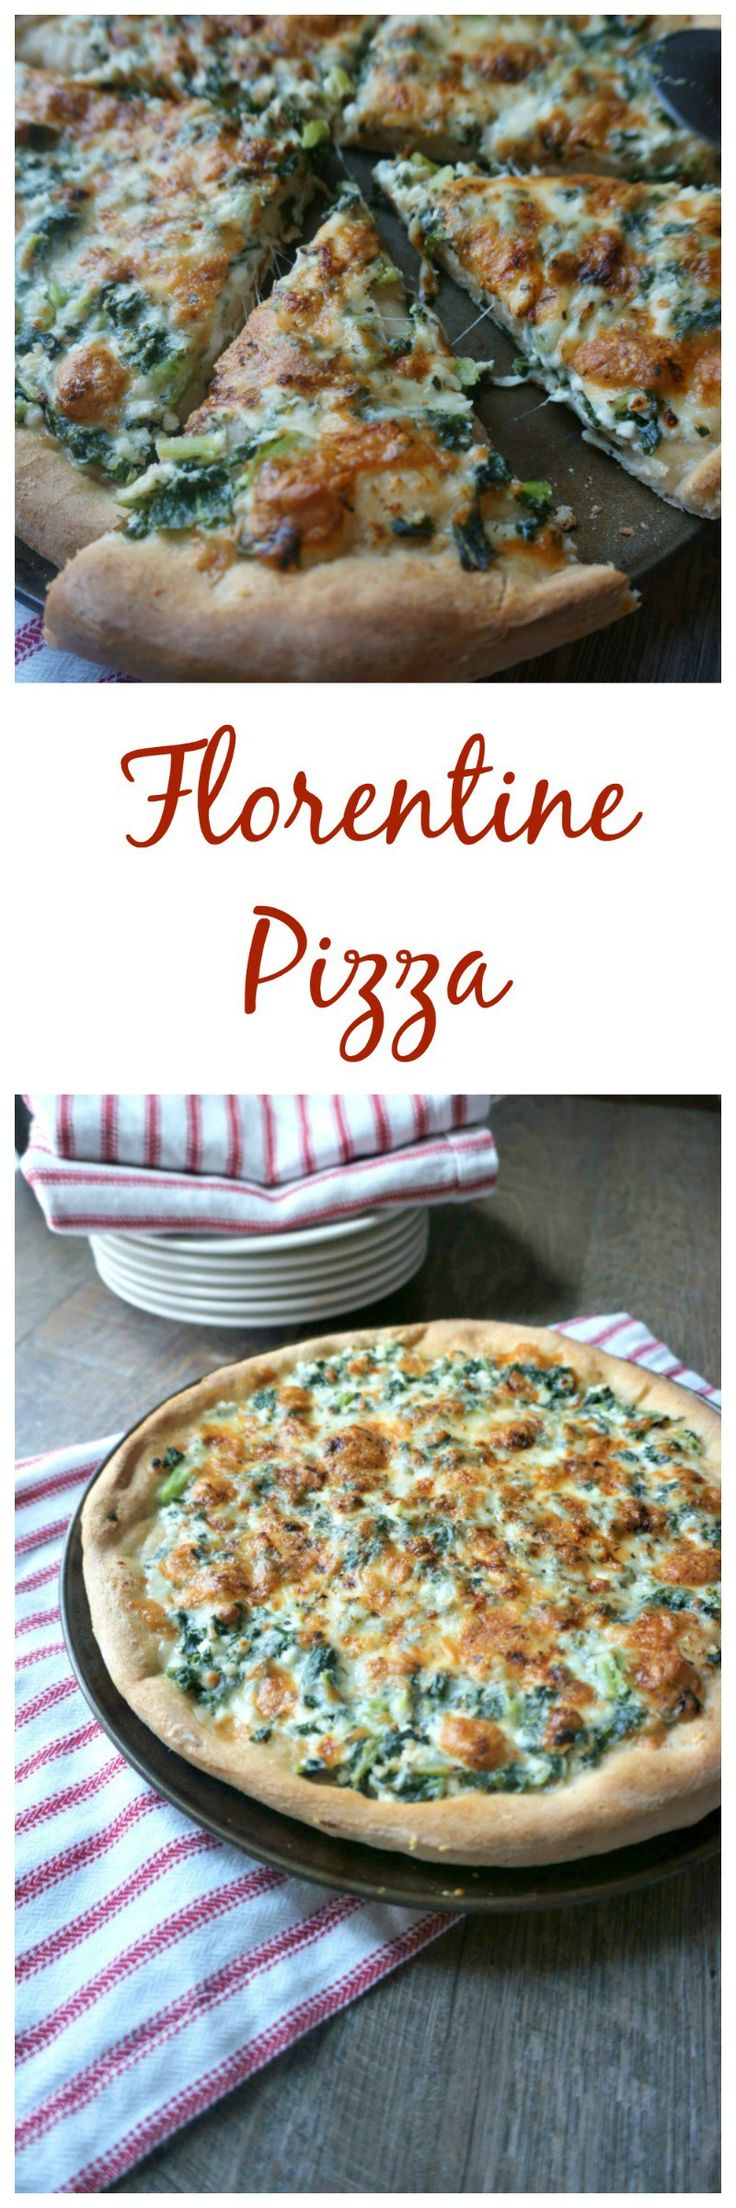 Florentine Pizza: Creamy ricotta, spinach, Italian herbs, and a mixture of mozzarella and parmesan cheeses captures the classic florentine flavor in pizza form. #SundaySupper